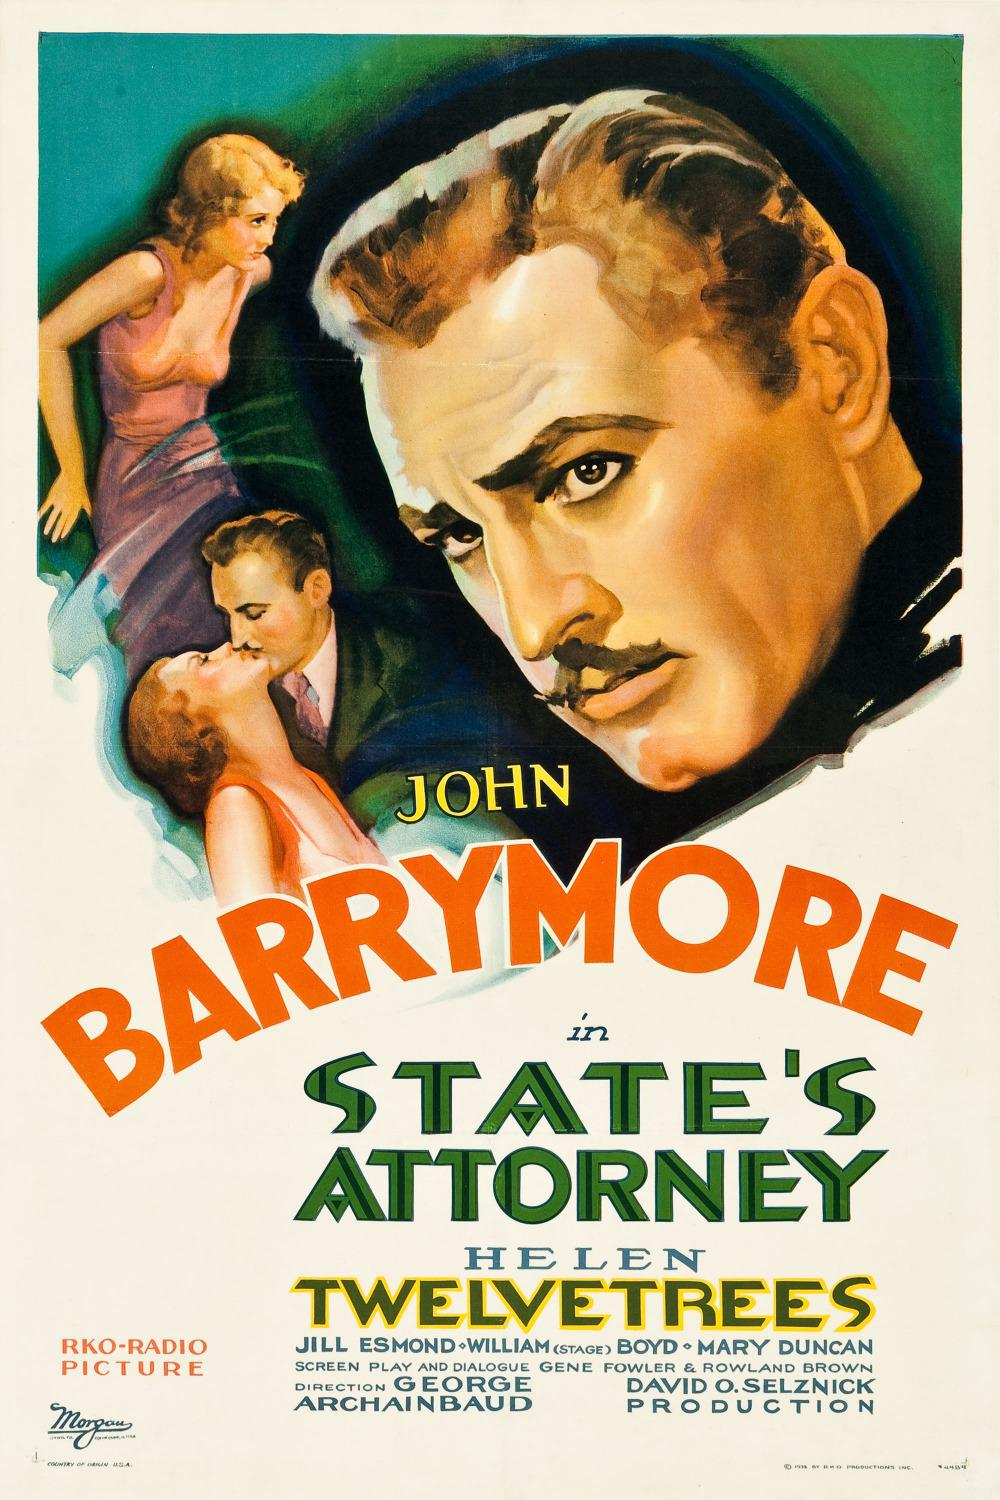 States attorney ... old classic movie with John Barrymore and Helen Twelvetrees - Jill Esmond - William Stage Boyd - Mary Duncan - Direction George Archainbaud - David O.Selznick Production